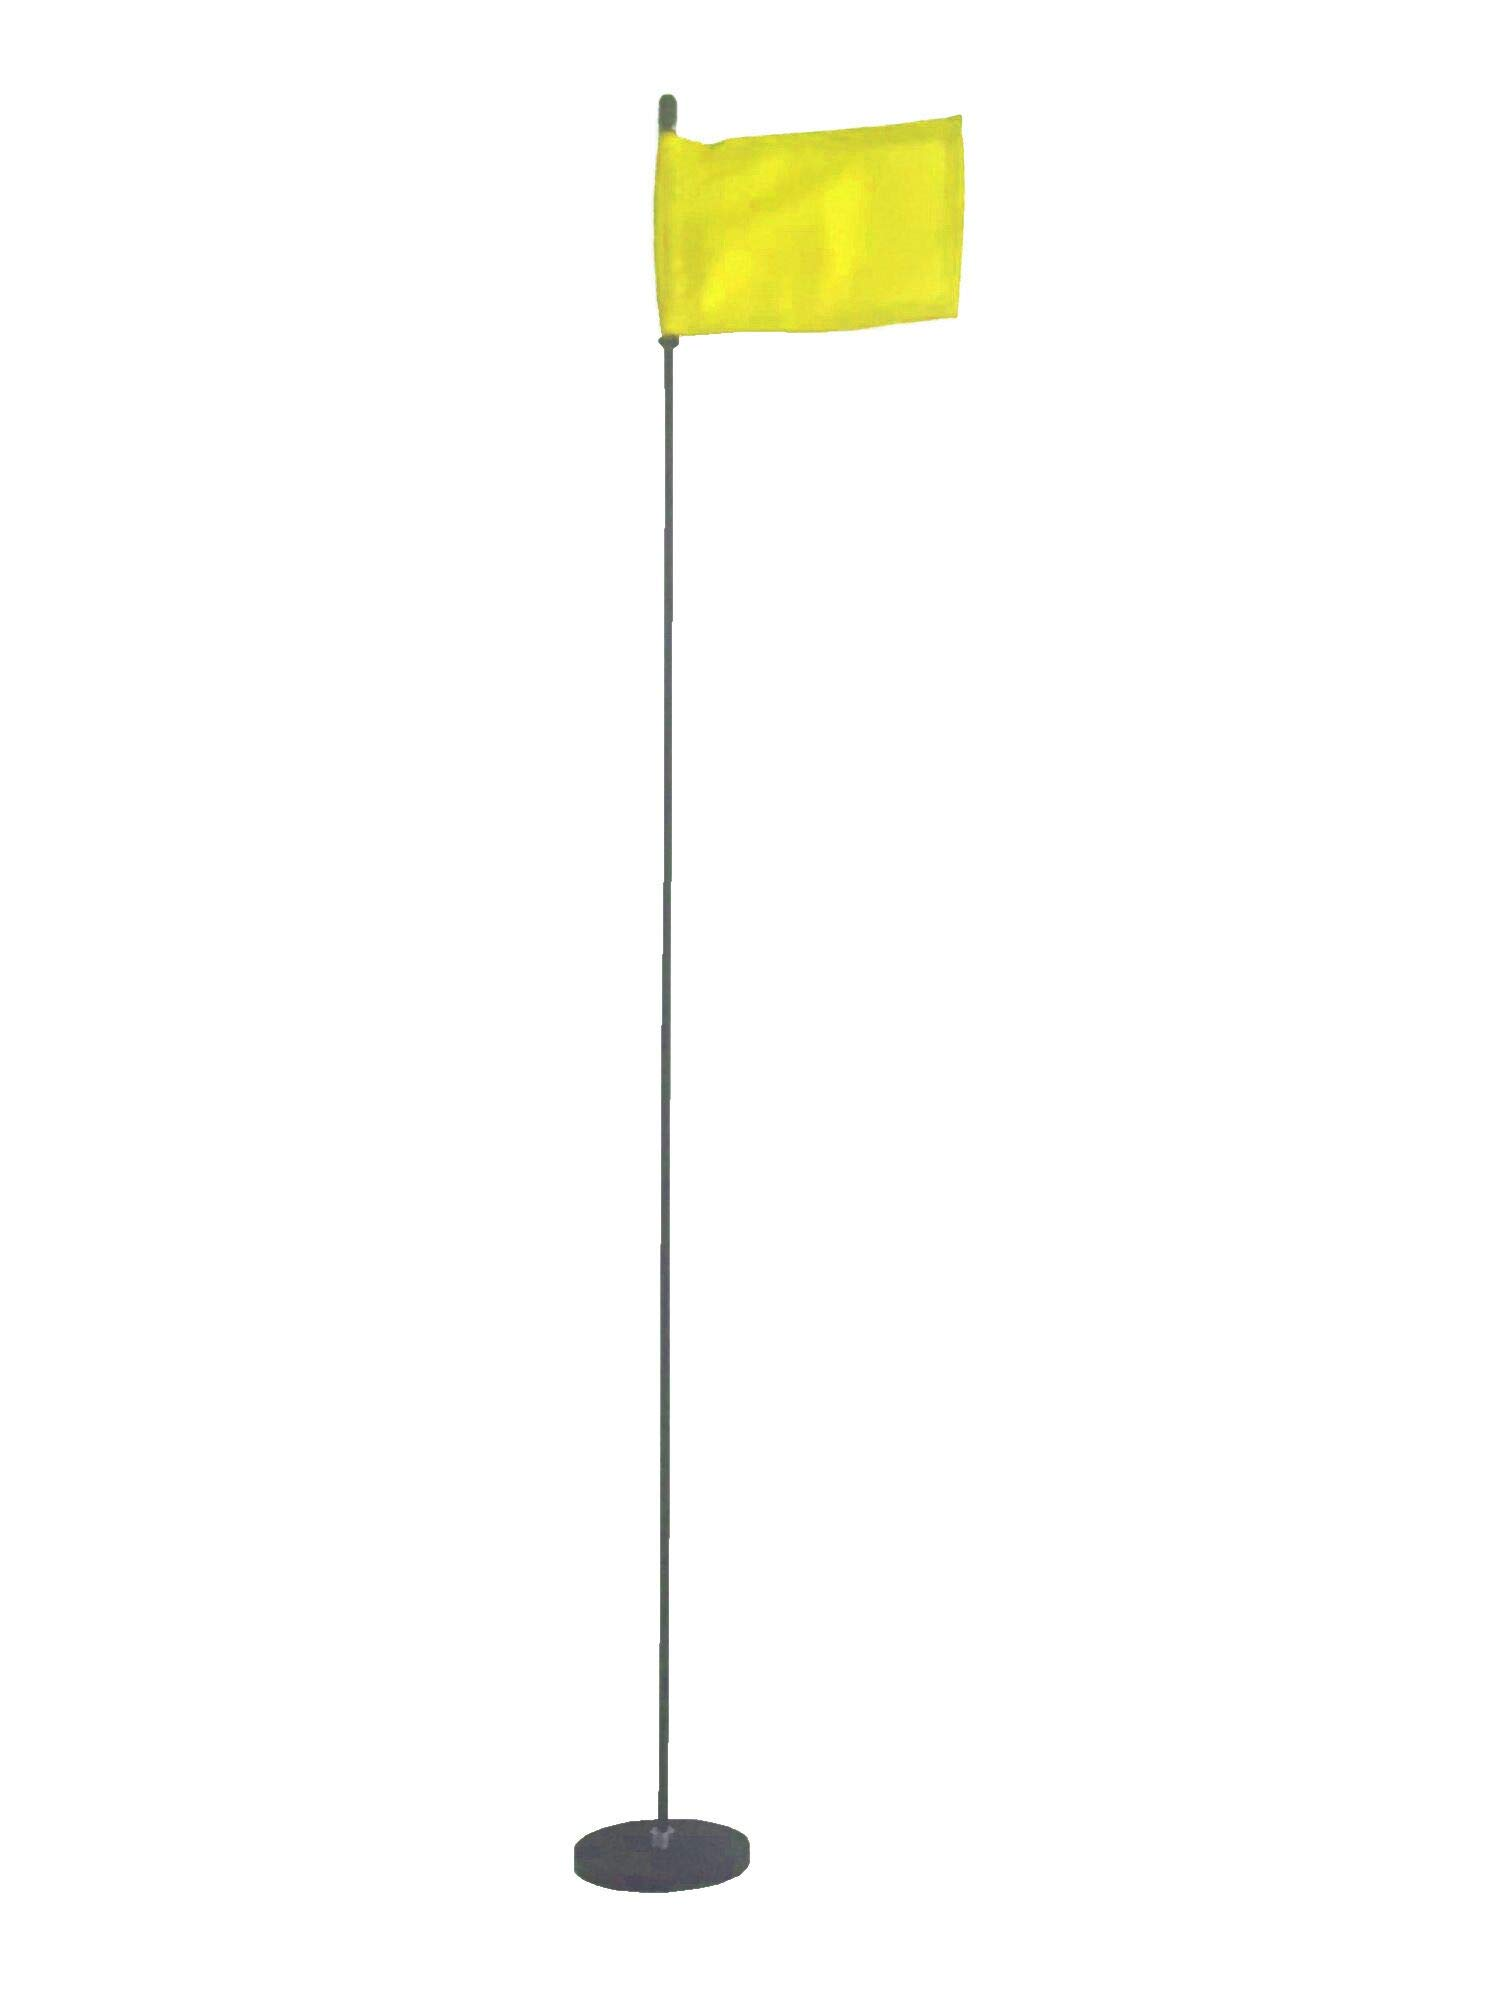 Magnetic Base Flag Holder - Hold Force 44 lbs. Flex Steel Spring Pole 36 inch (4 x 6) Yellow Flag